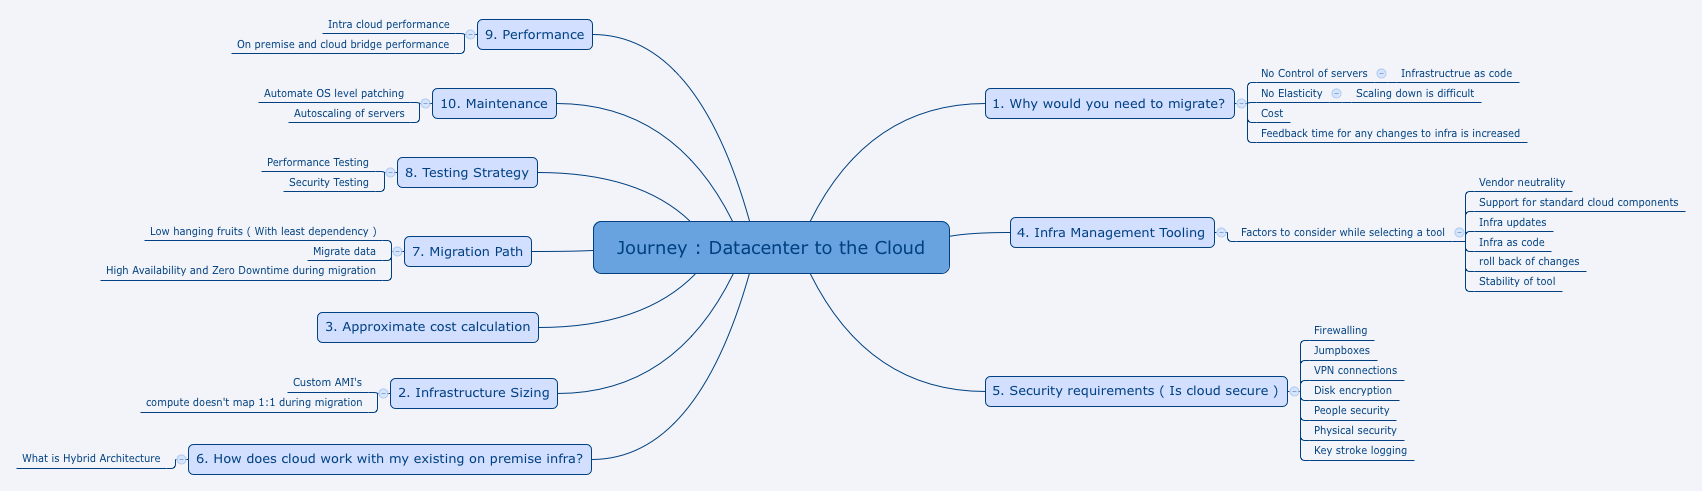 Journey : Datacenter to the Cloud